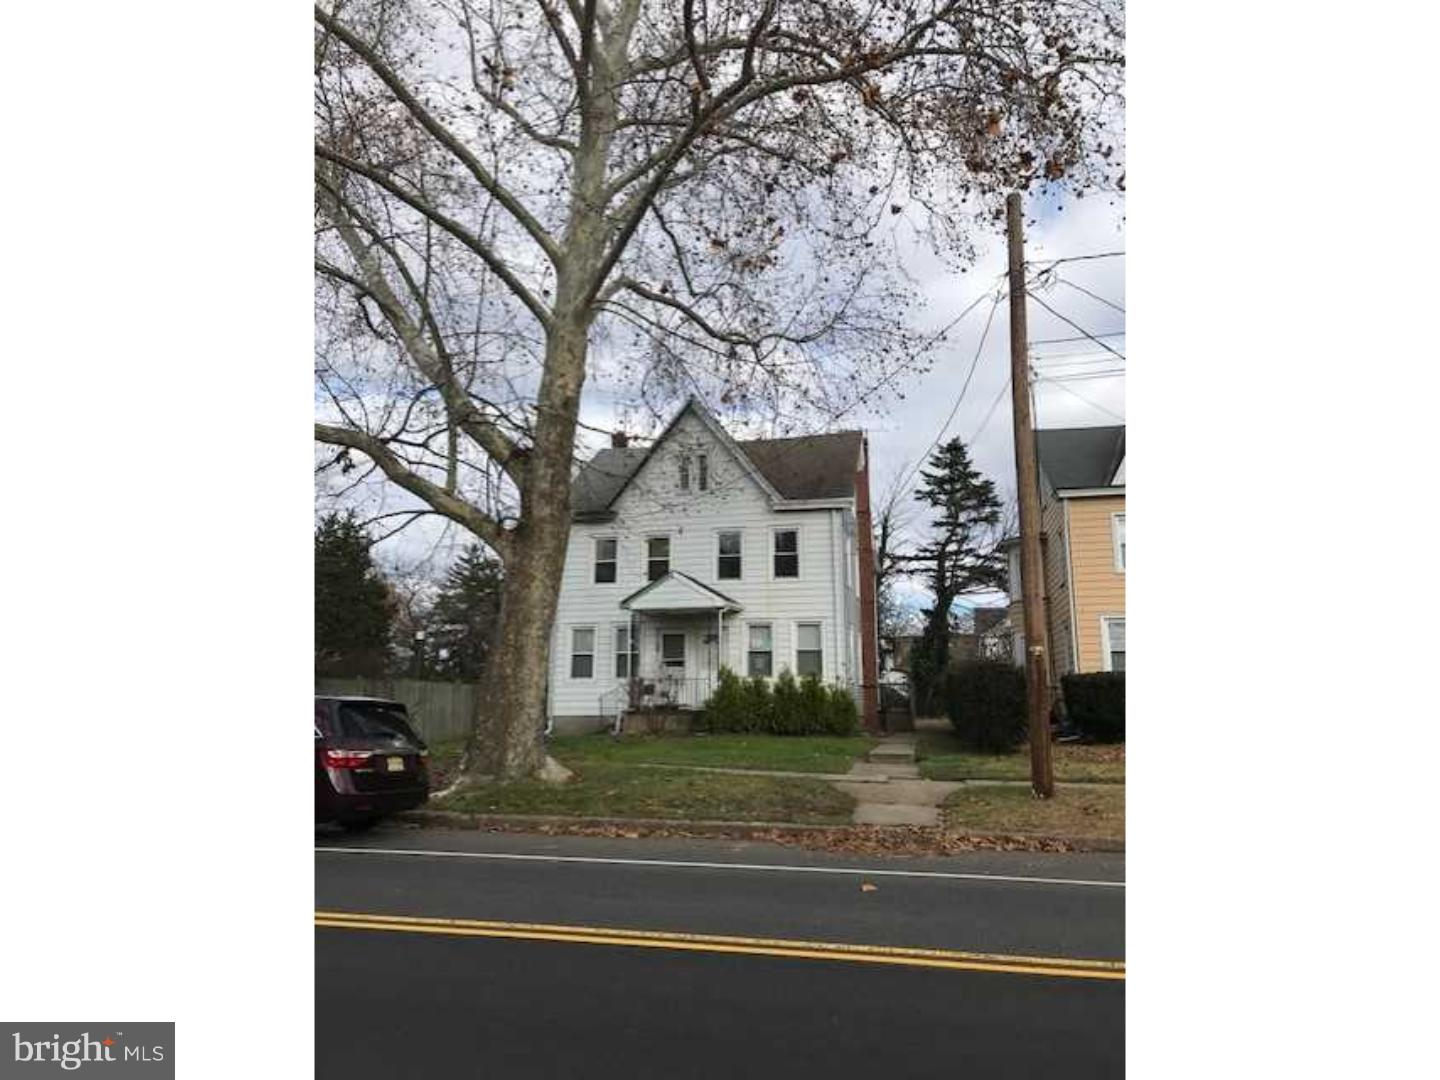 335 W FRONT STREET, FLORENCE, NJ 08518